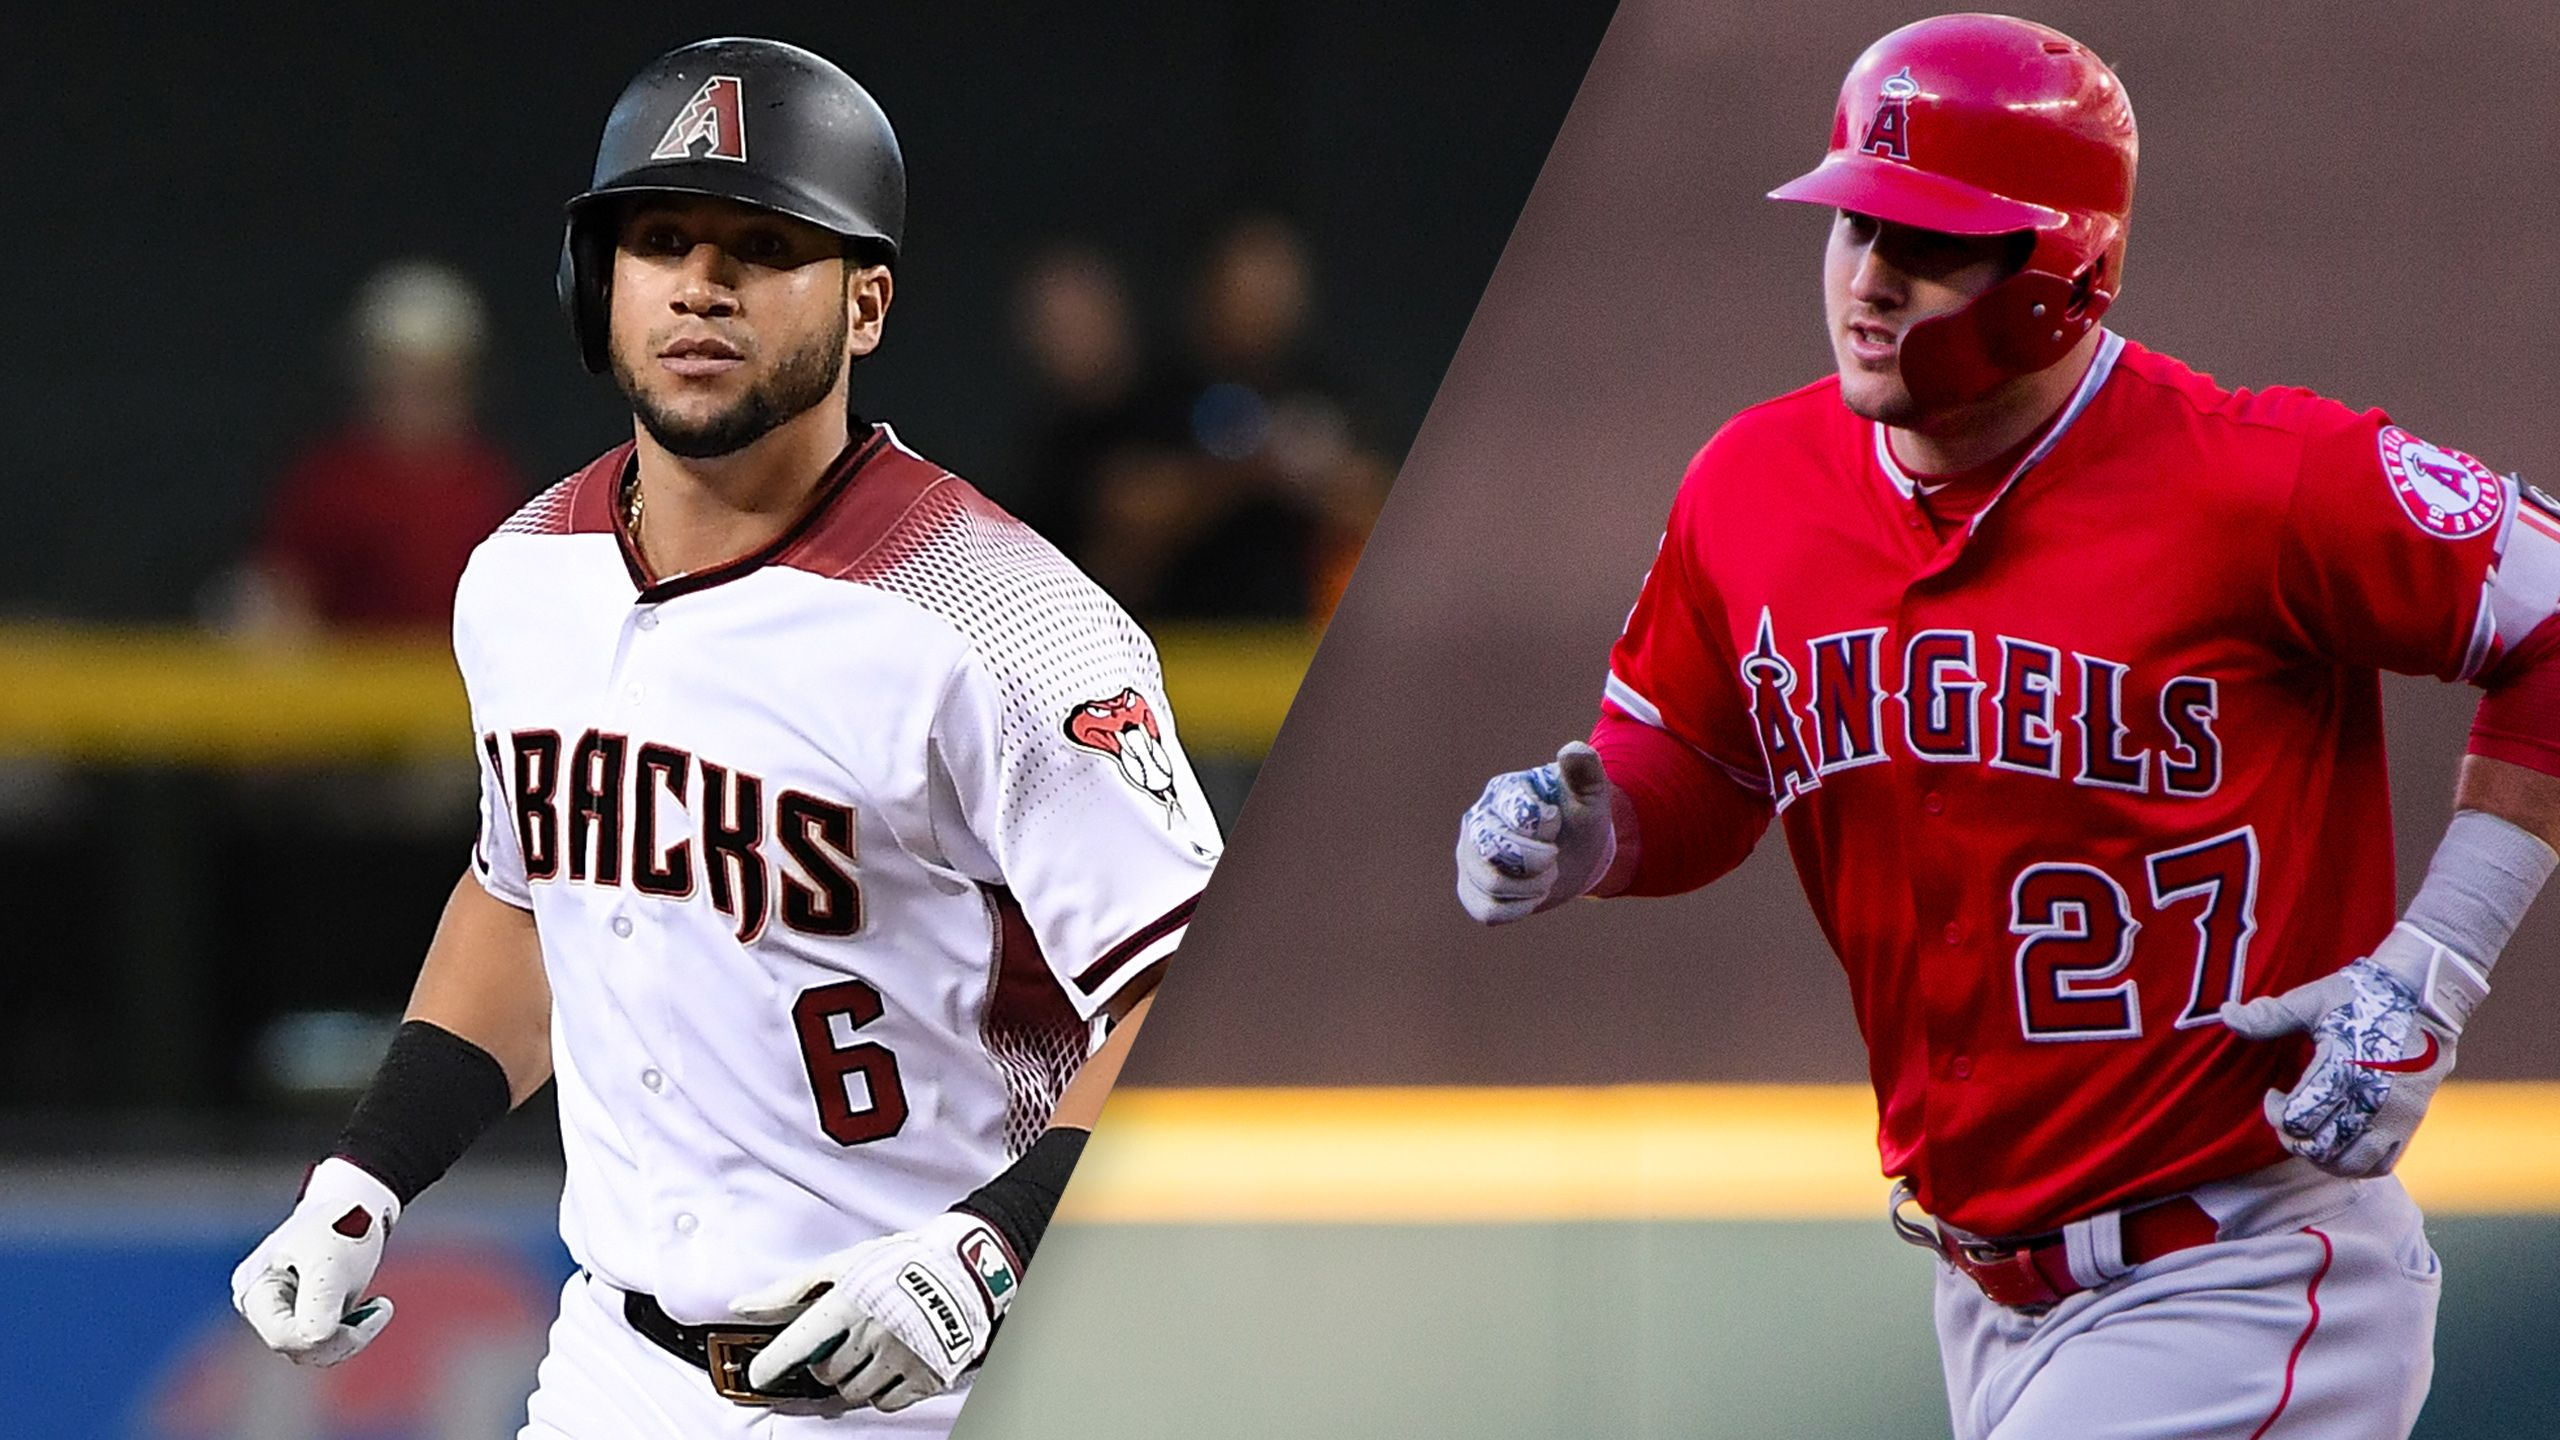 Arizona Diamondbacks vs. Los Angeles Angels of Anaheim (re-air)